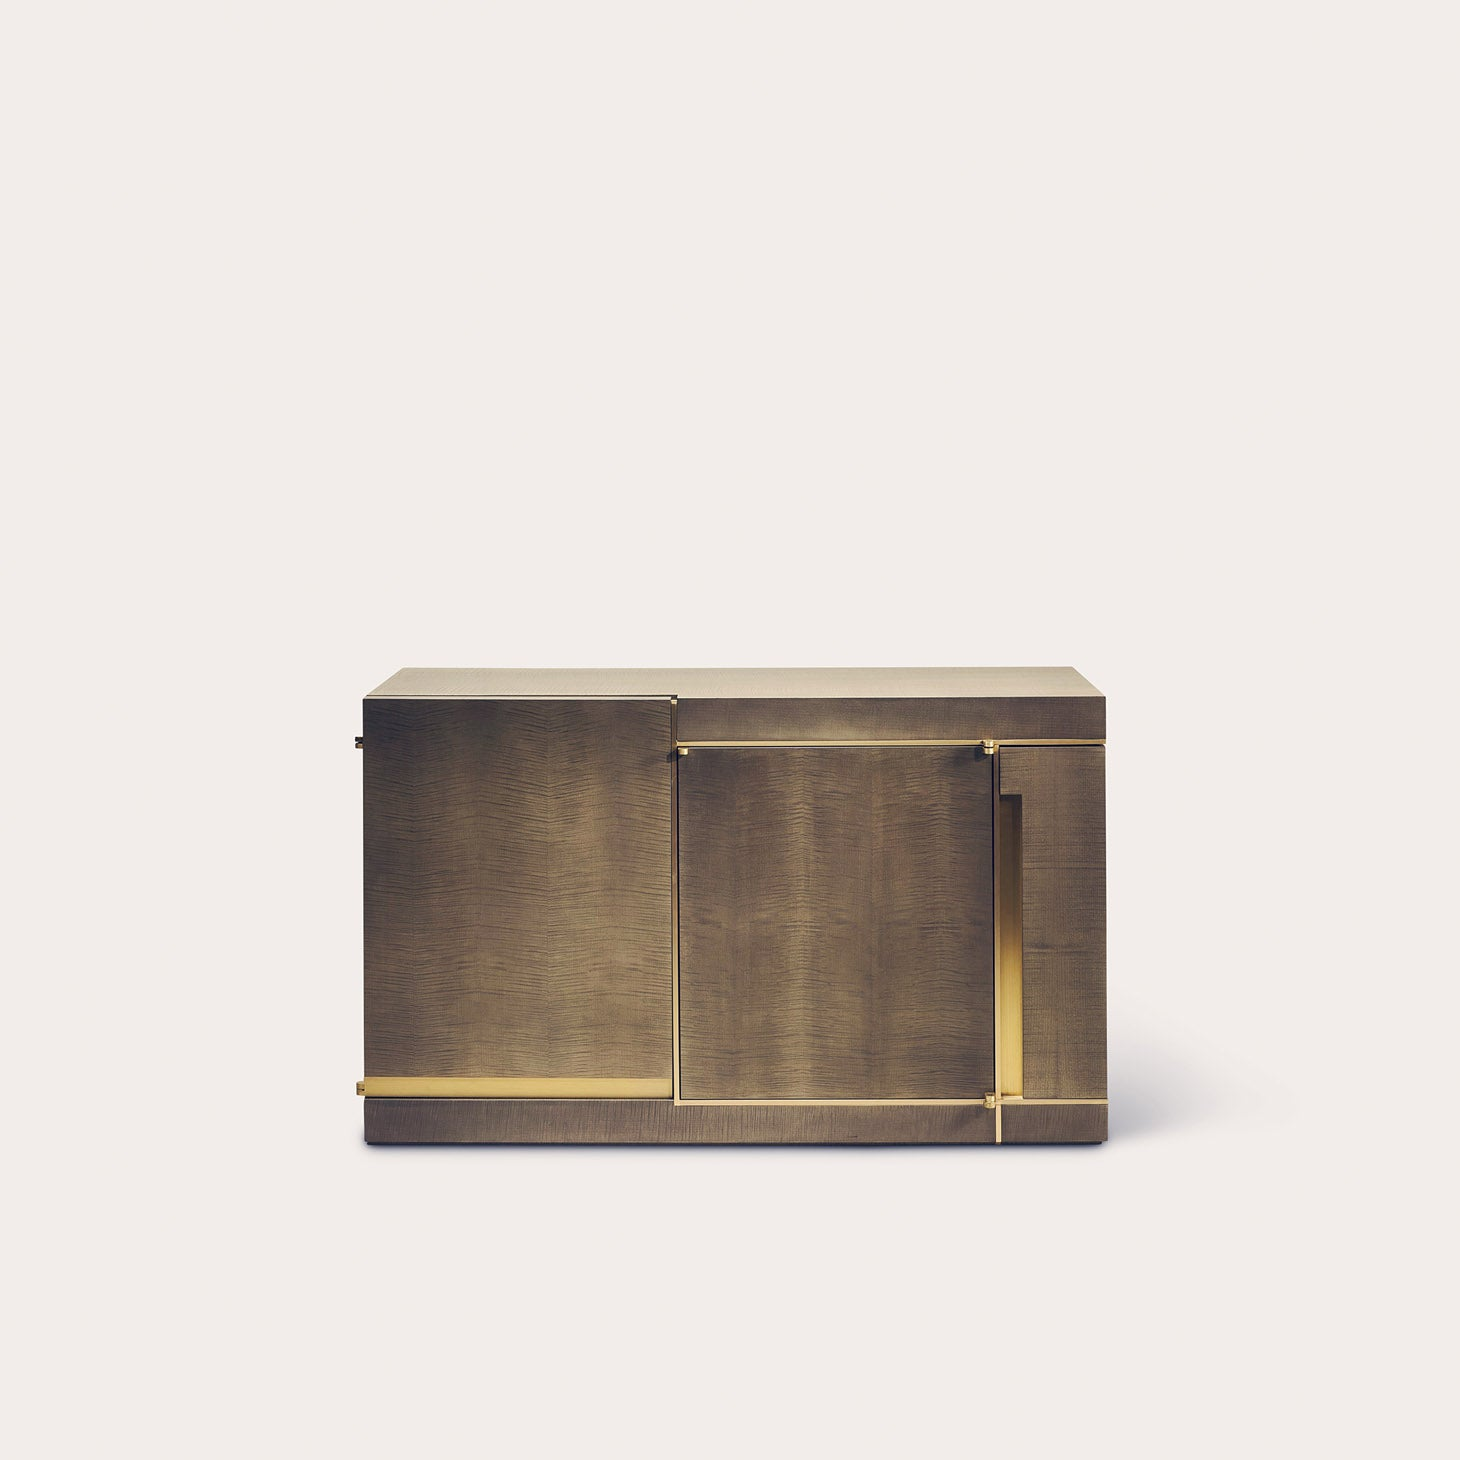 SOLNA Storage Bruno Moinard Designer Furniture Sku: 773-220-10008